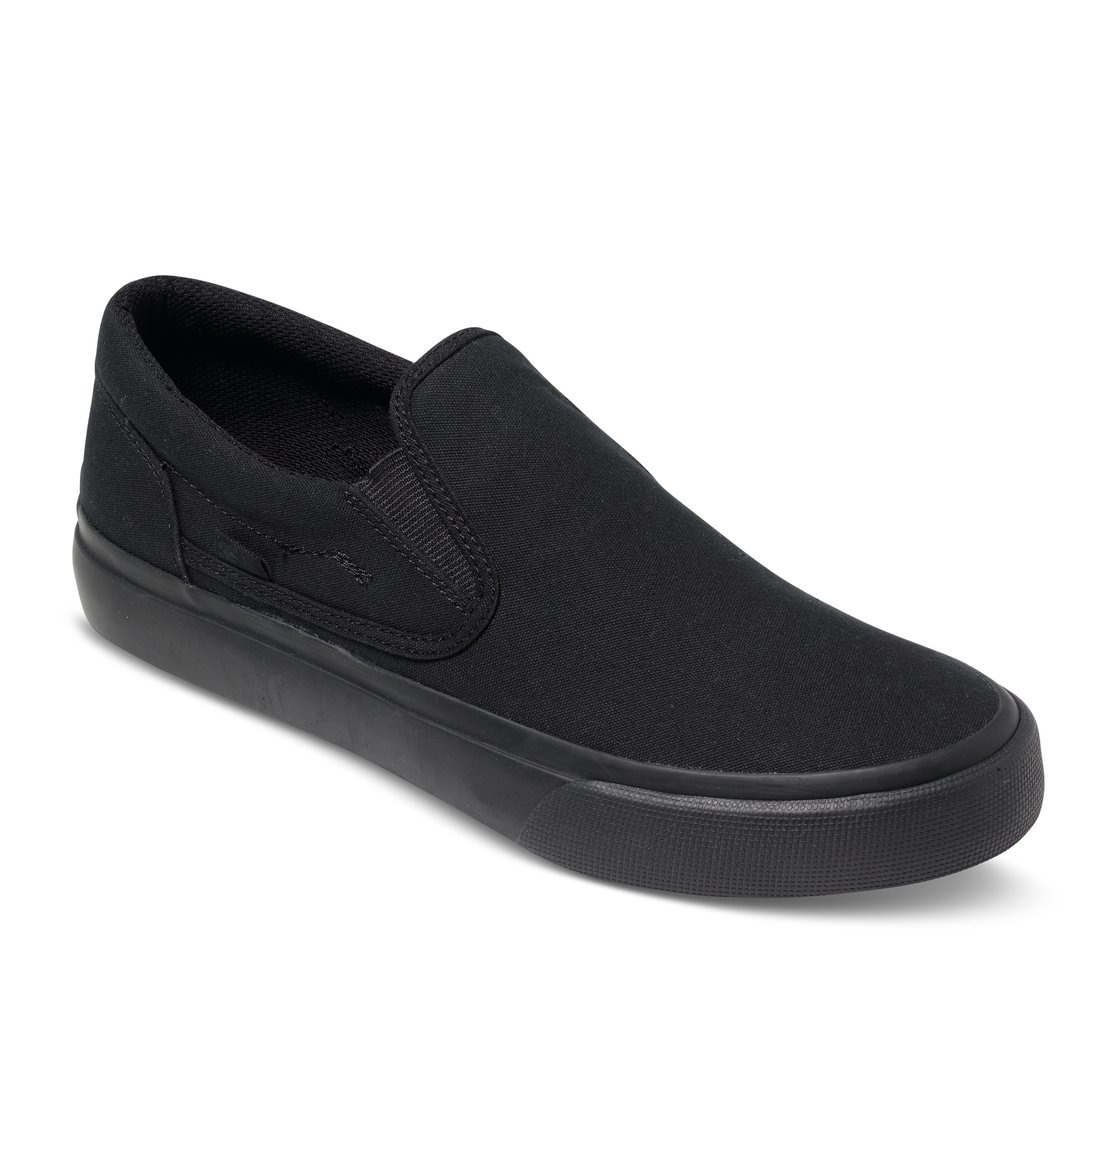 trase chaussures slip on adys300184 dc shoes. Black Bedroom Furniture Sets. Home Design Ideas